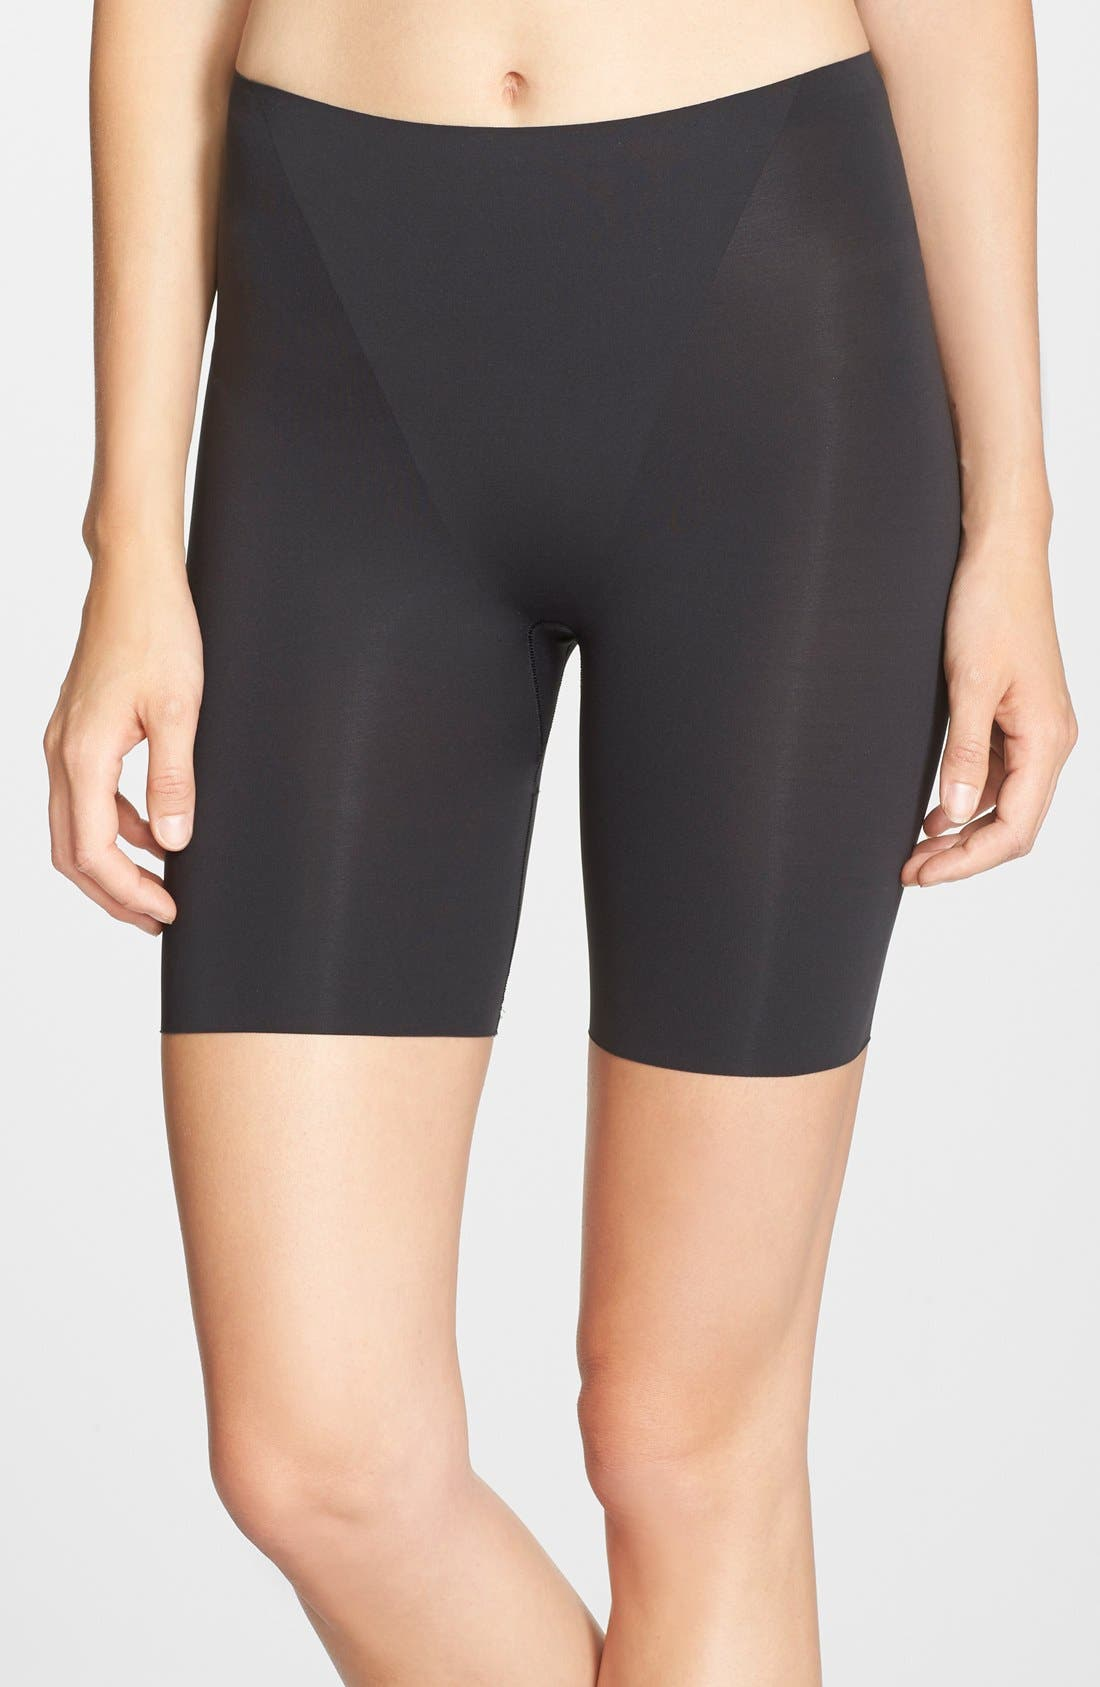 Alternate Image 1 Selected - SPANX® 'Trust Your Thinstincts' Mid Thigh Shaper